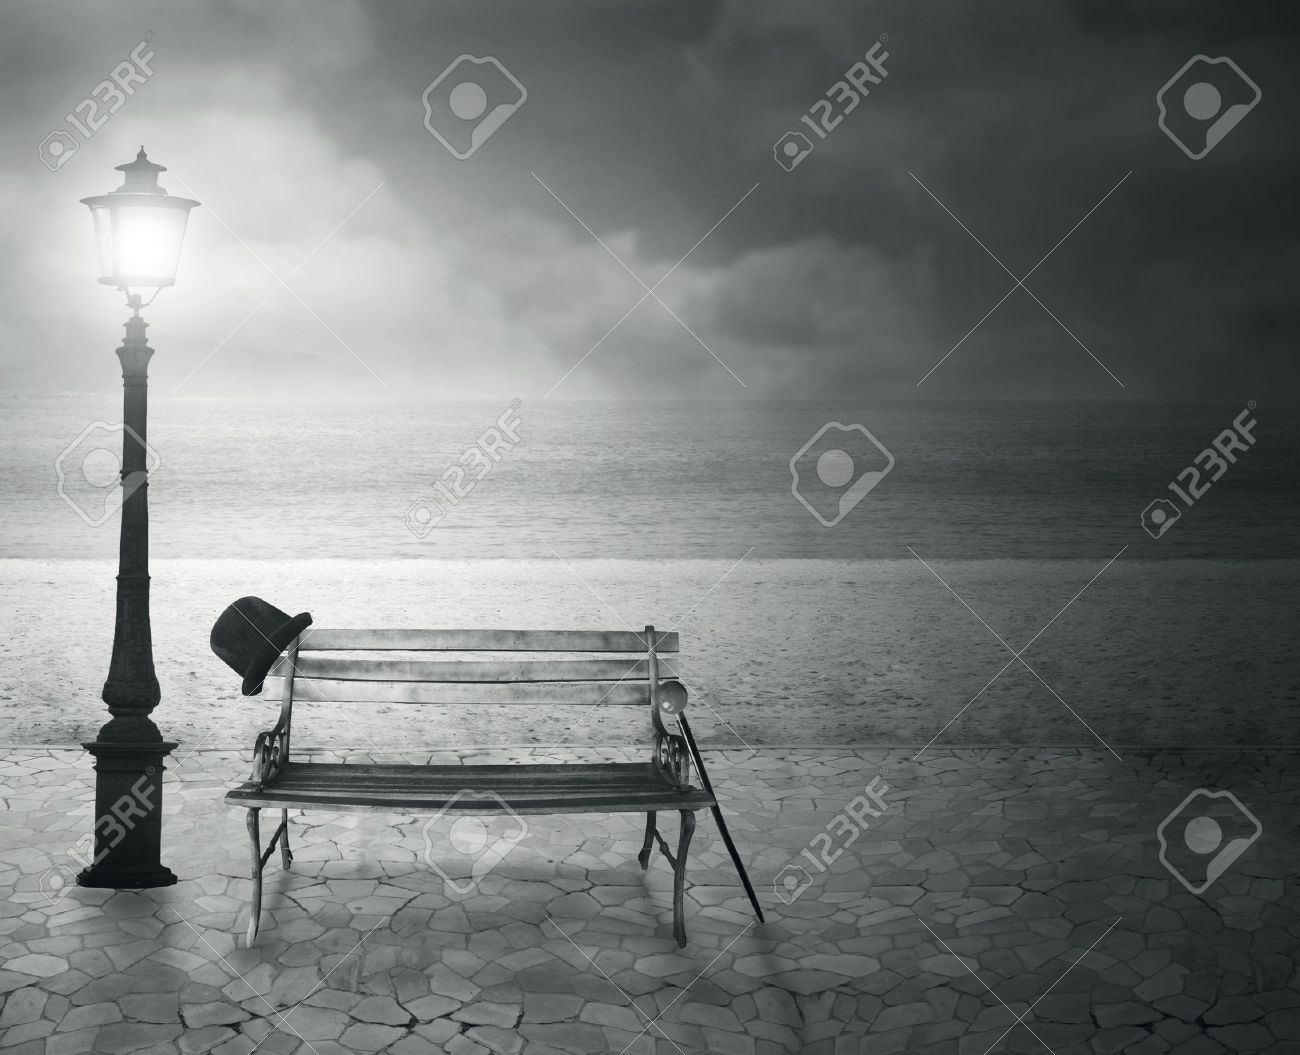 Beautiful vintage artistic imagine at the sea at night in black and white - 16271265